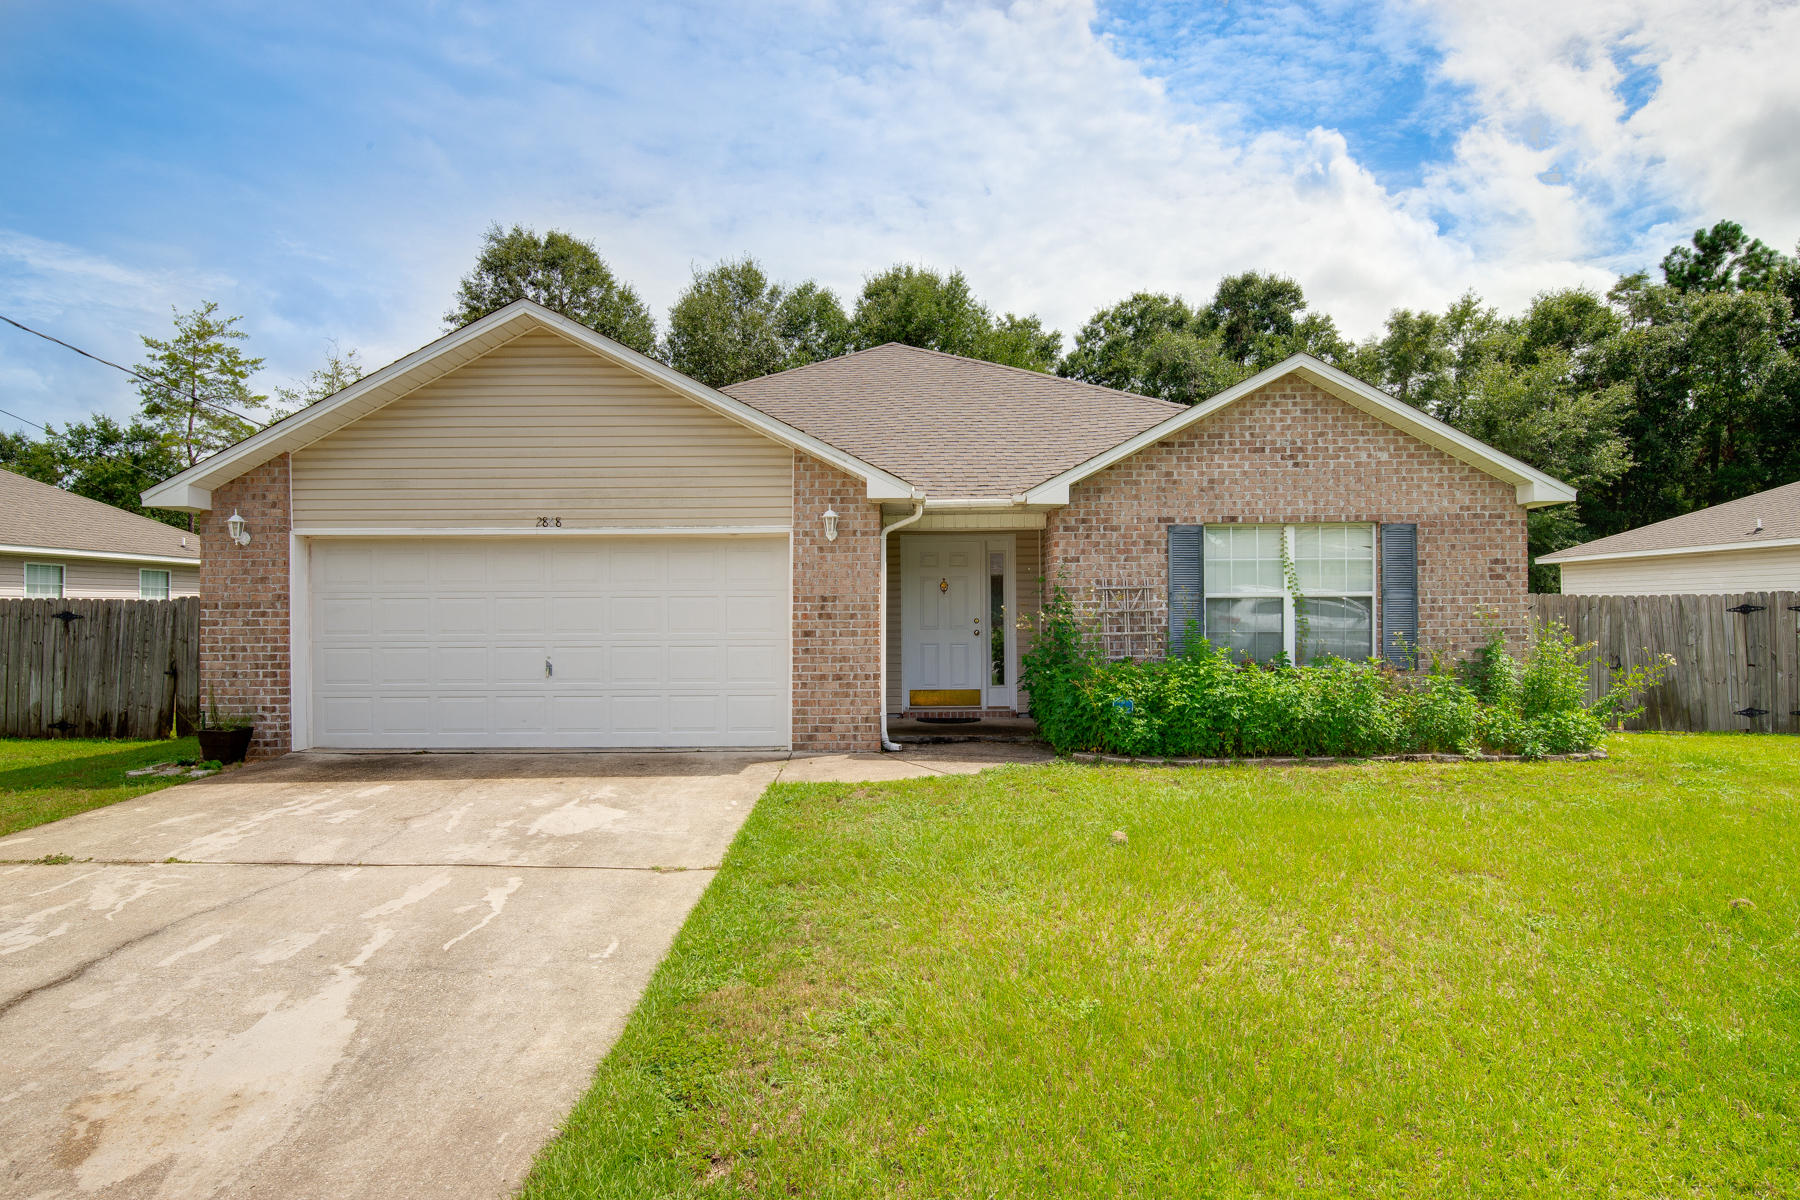 Photo of home for sale at 2868 Soles, Crestview FL